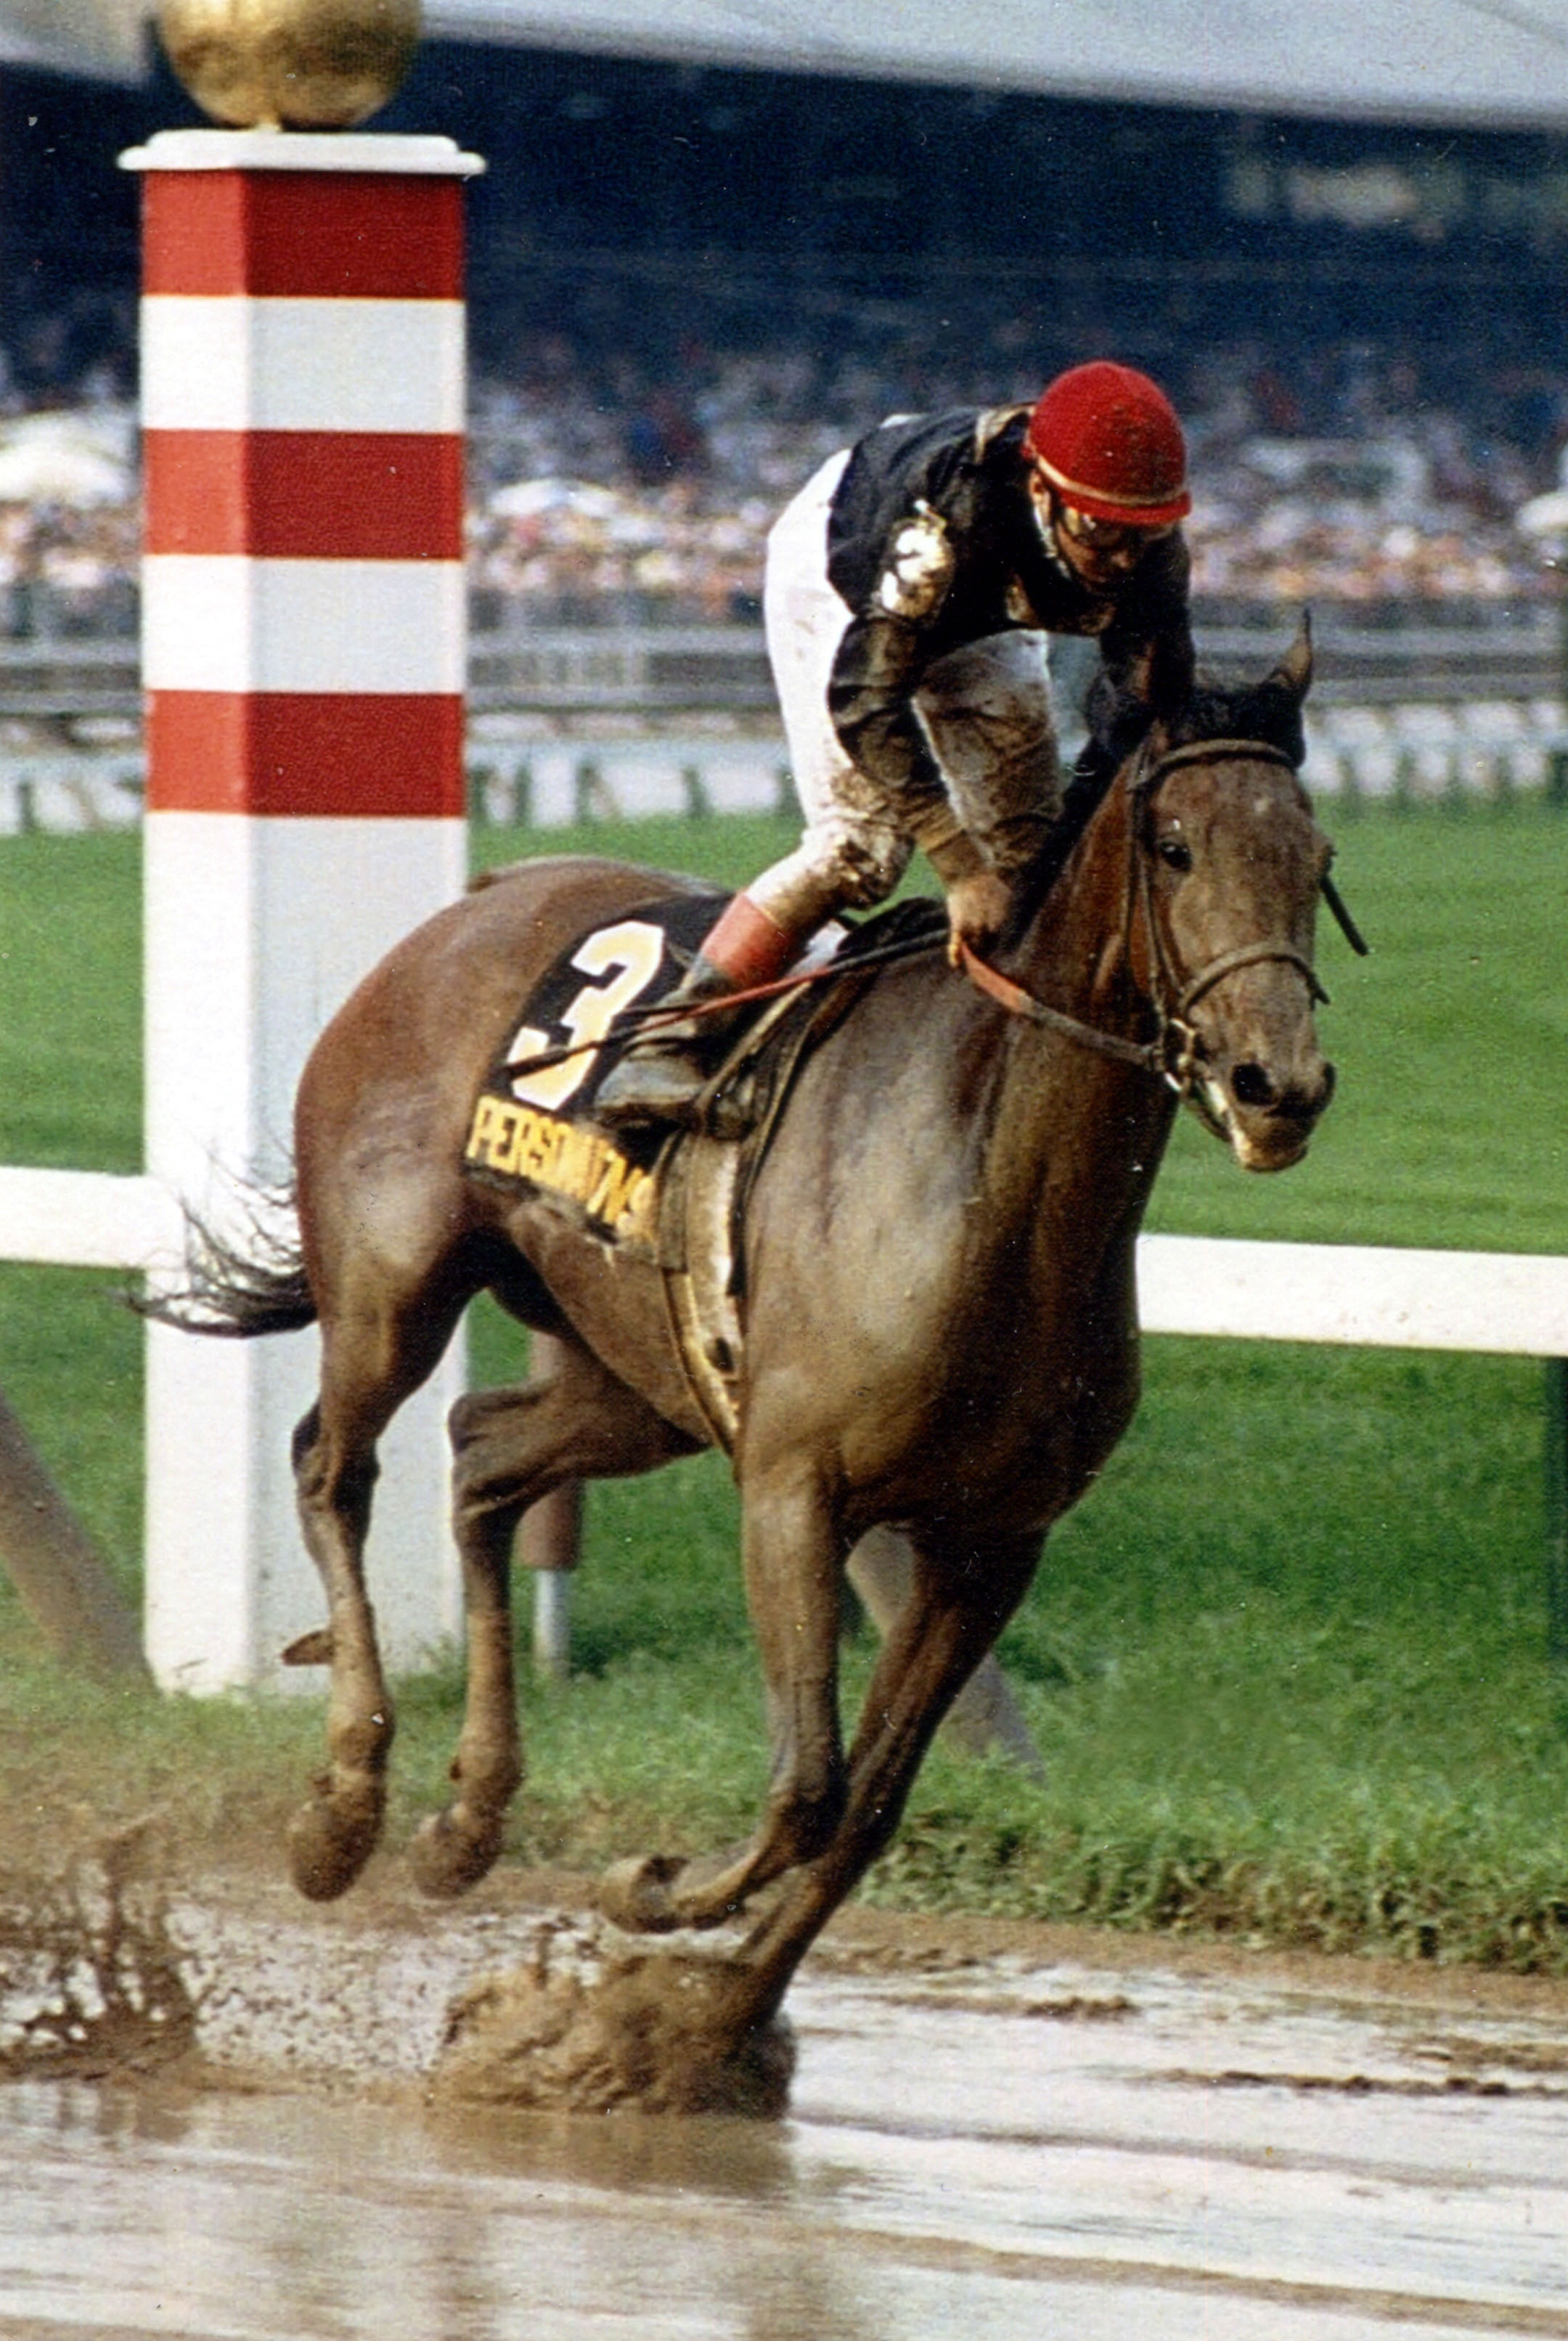 Personal Ensign (Randy Romero up) racing in the 1988 Whitney Handicap at Saratoga (Mike Pender/Museum Collection)